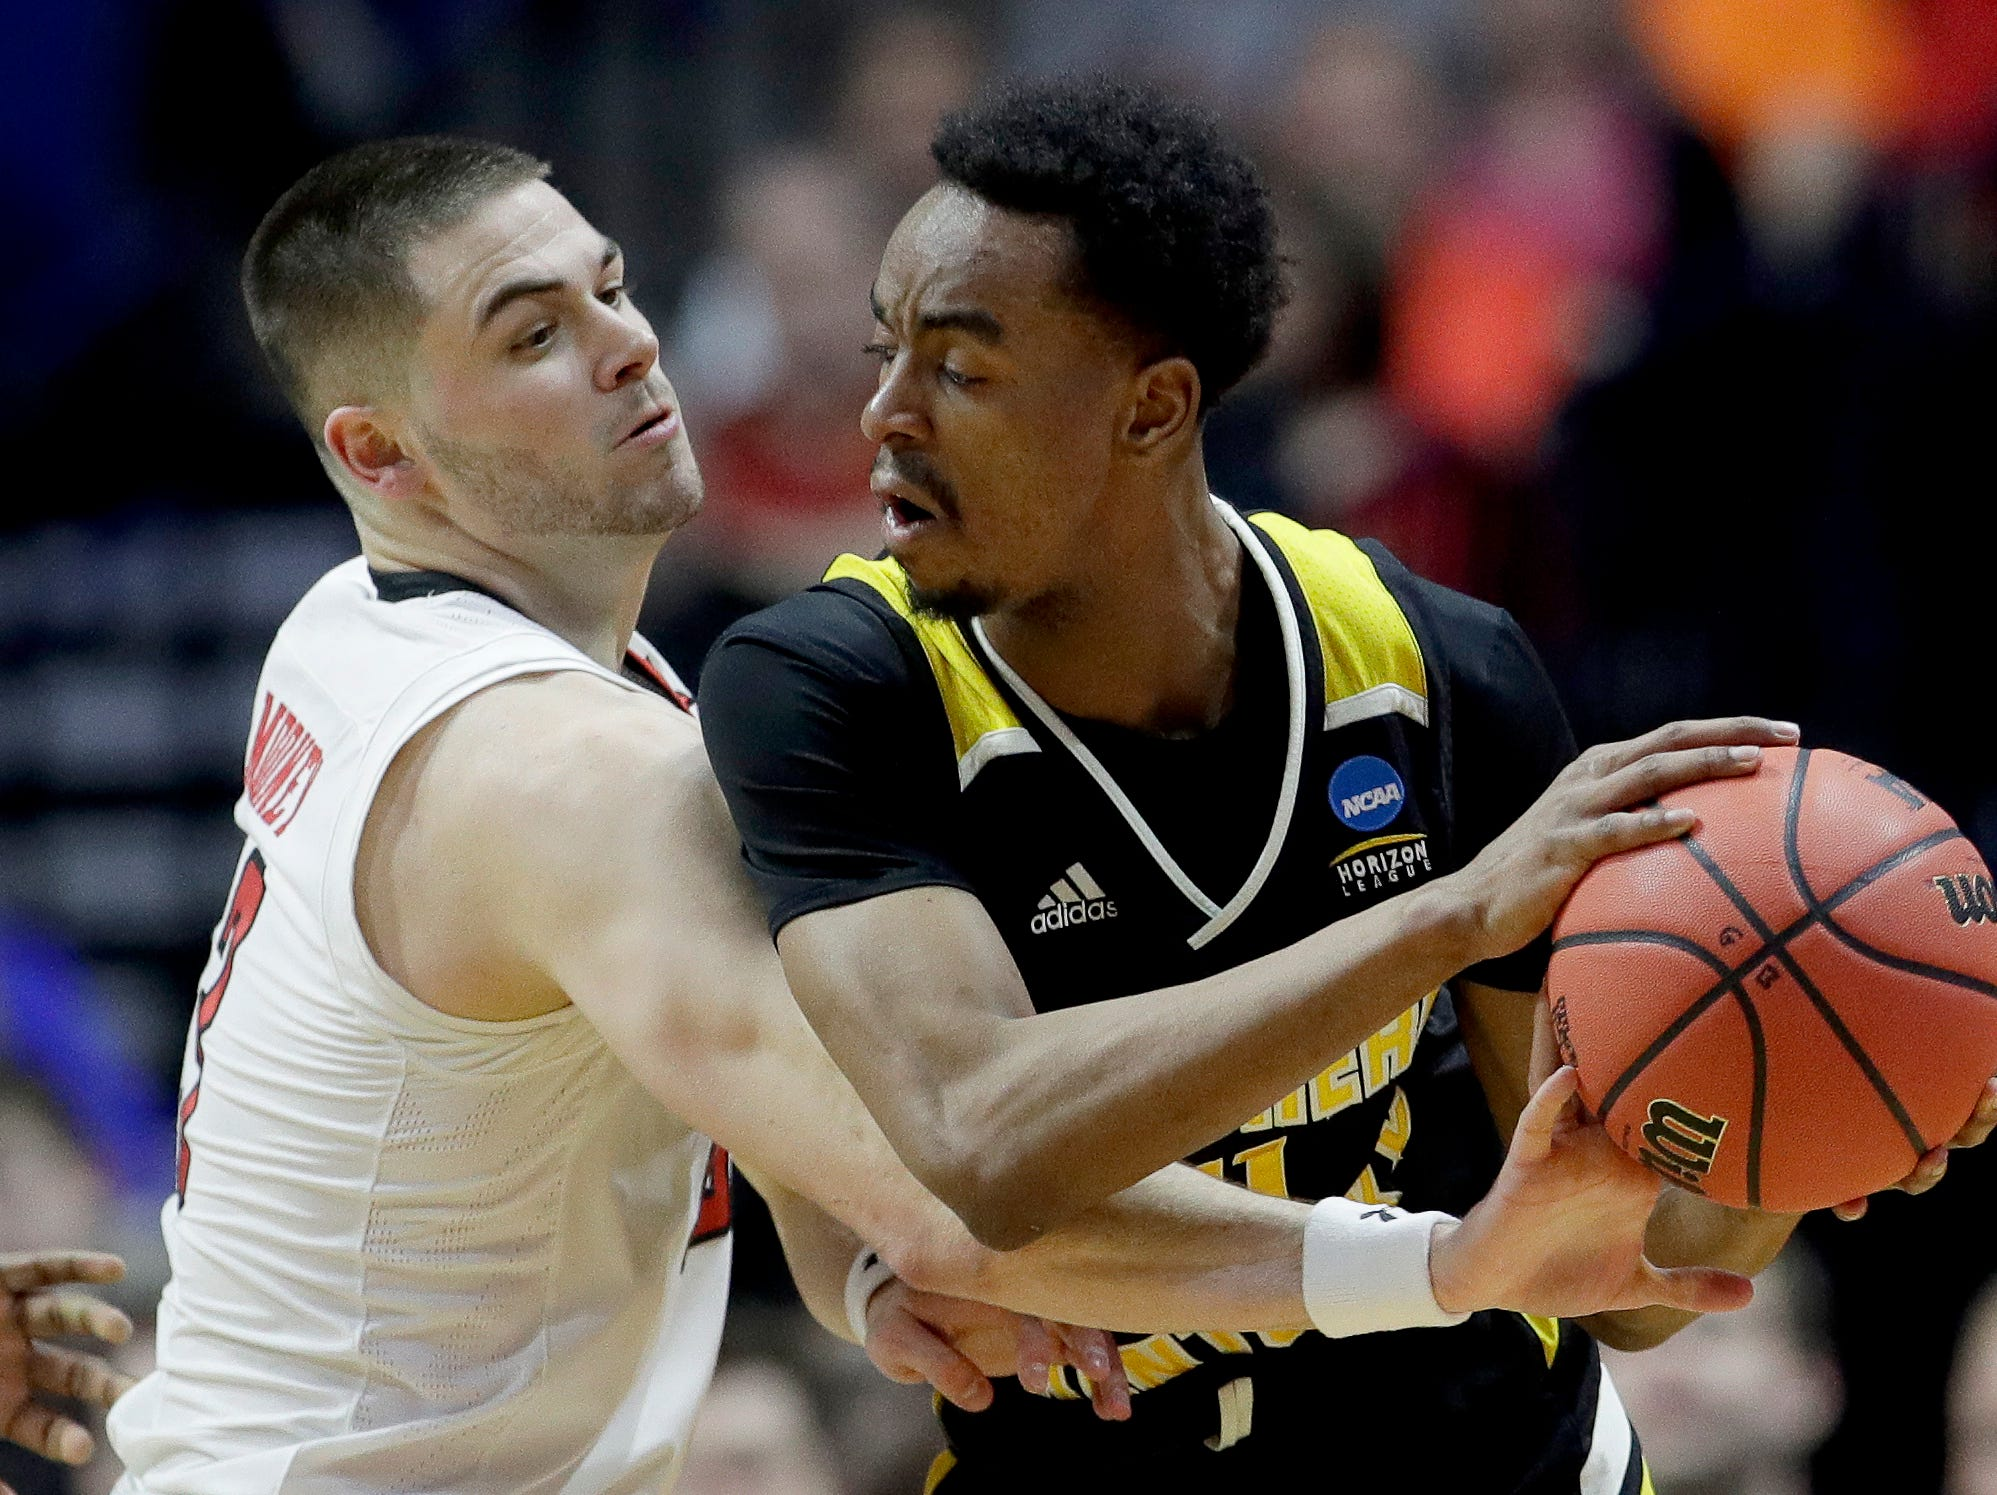 Texas Tech's Matt Mooney, left, tries to steal the ball from Northern Kentucky's Jalen Tate during the first half of a first round men's college basketball game in the NCAA Tournament Friday, March 22, 2019, in Tulsa, Okla. (AP Photo/Charlie Riedel)